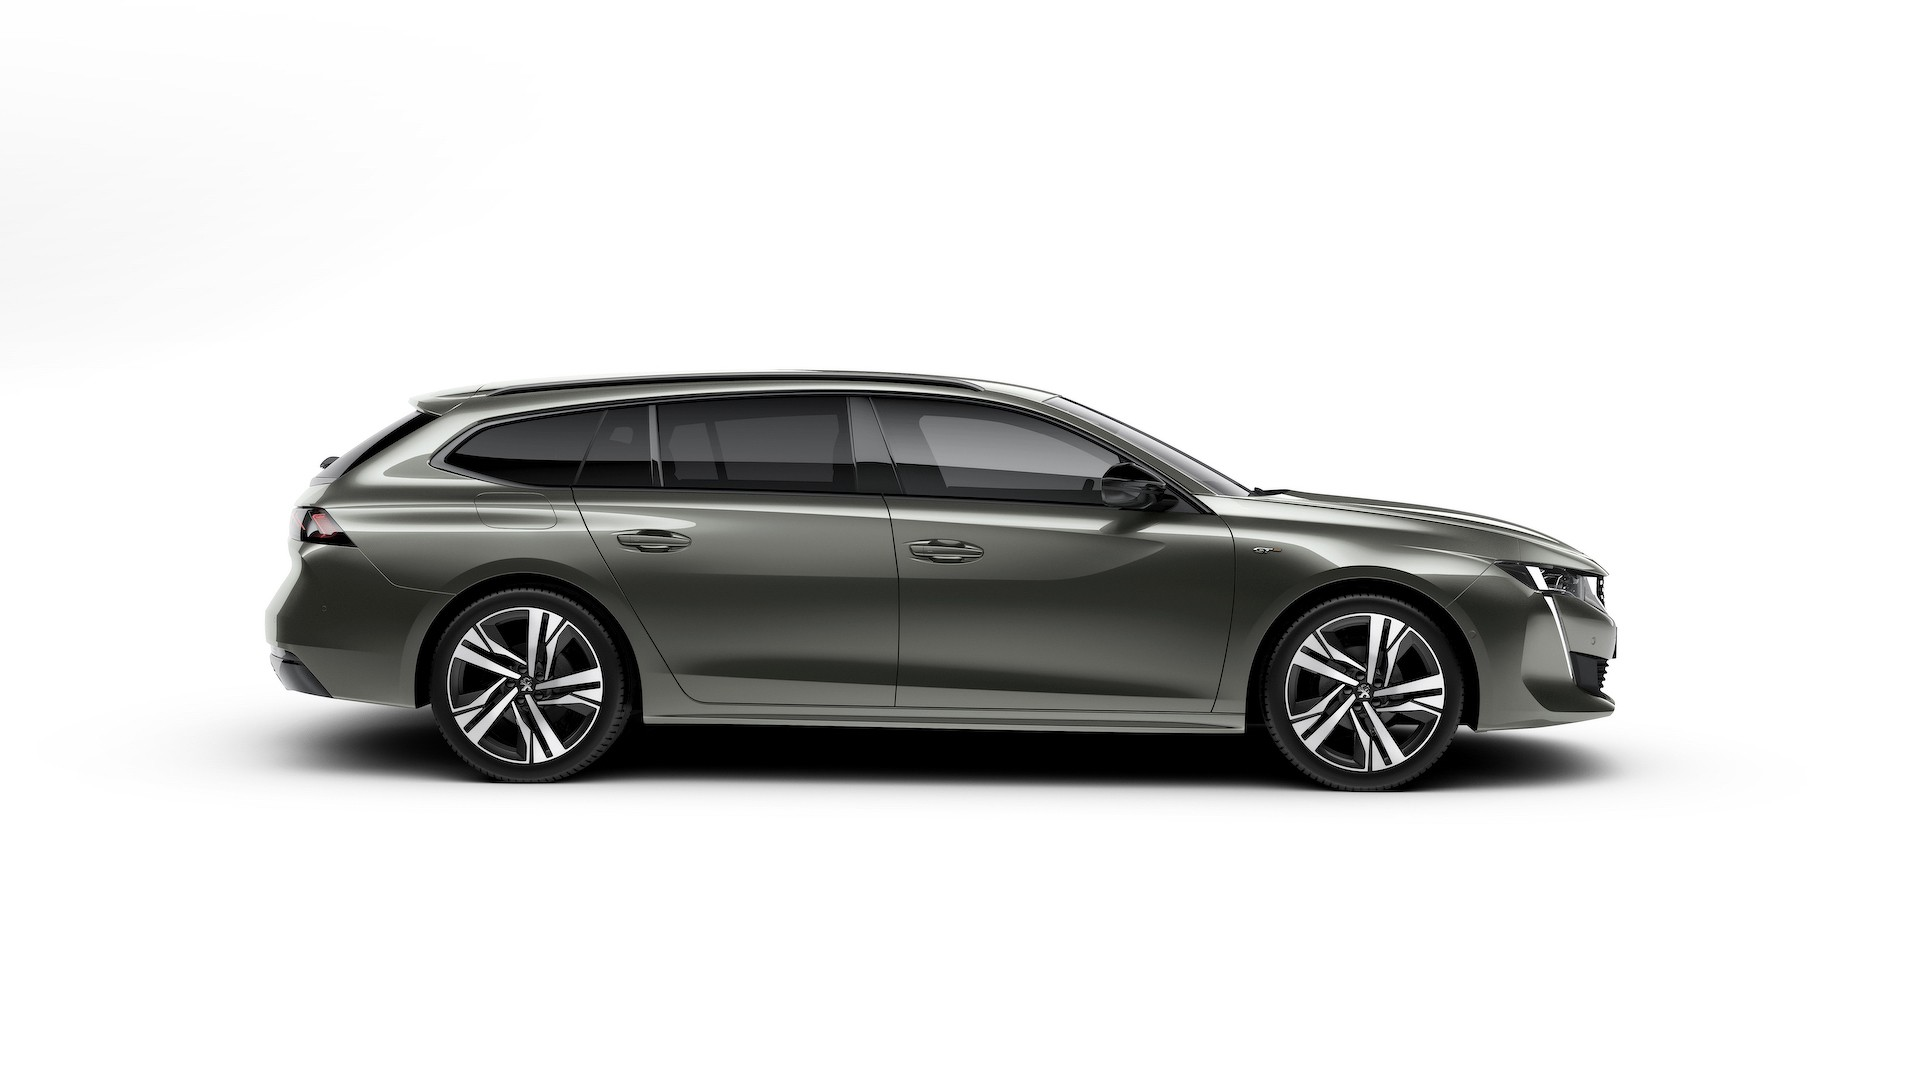 peugeot 508 shooting brake is your 1 10 price ferrari autoevolution. Black Bedroom Furniture Sets. Home Design Ideas